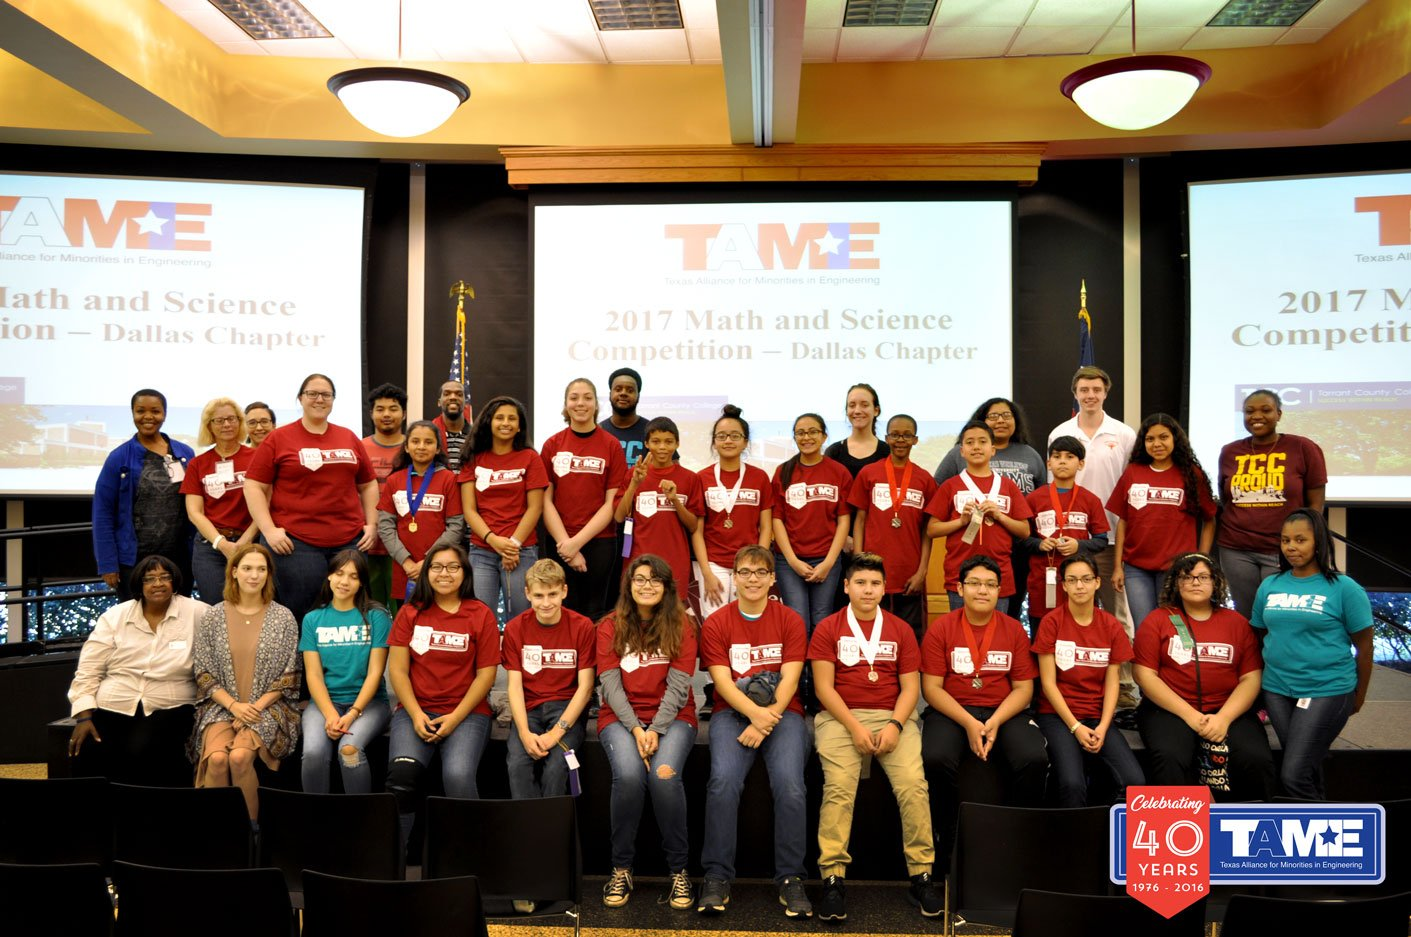 (Dallas, TX) – The 2017 TAME Dallas STEM Competition was hosted at Tarrant County College on Saturday February 11, 2017. The event, held free of cost to participants, brought together over 80 student competitors (grades 6-12) from across the region.